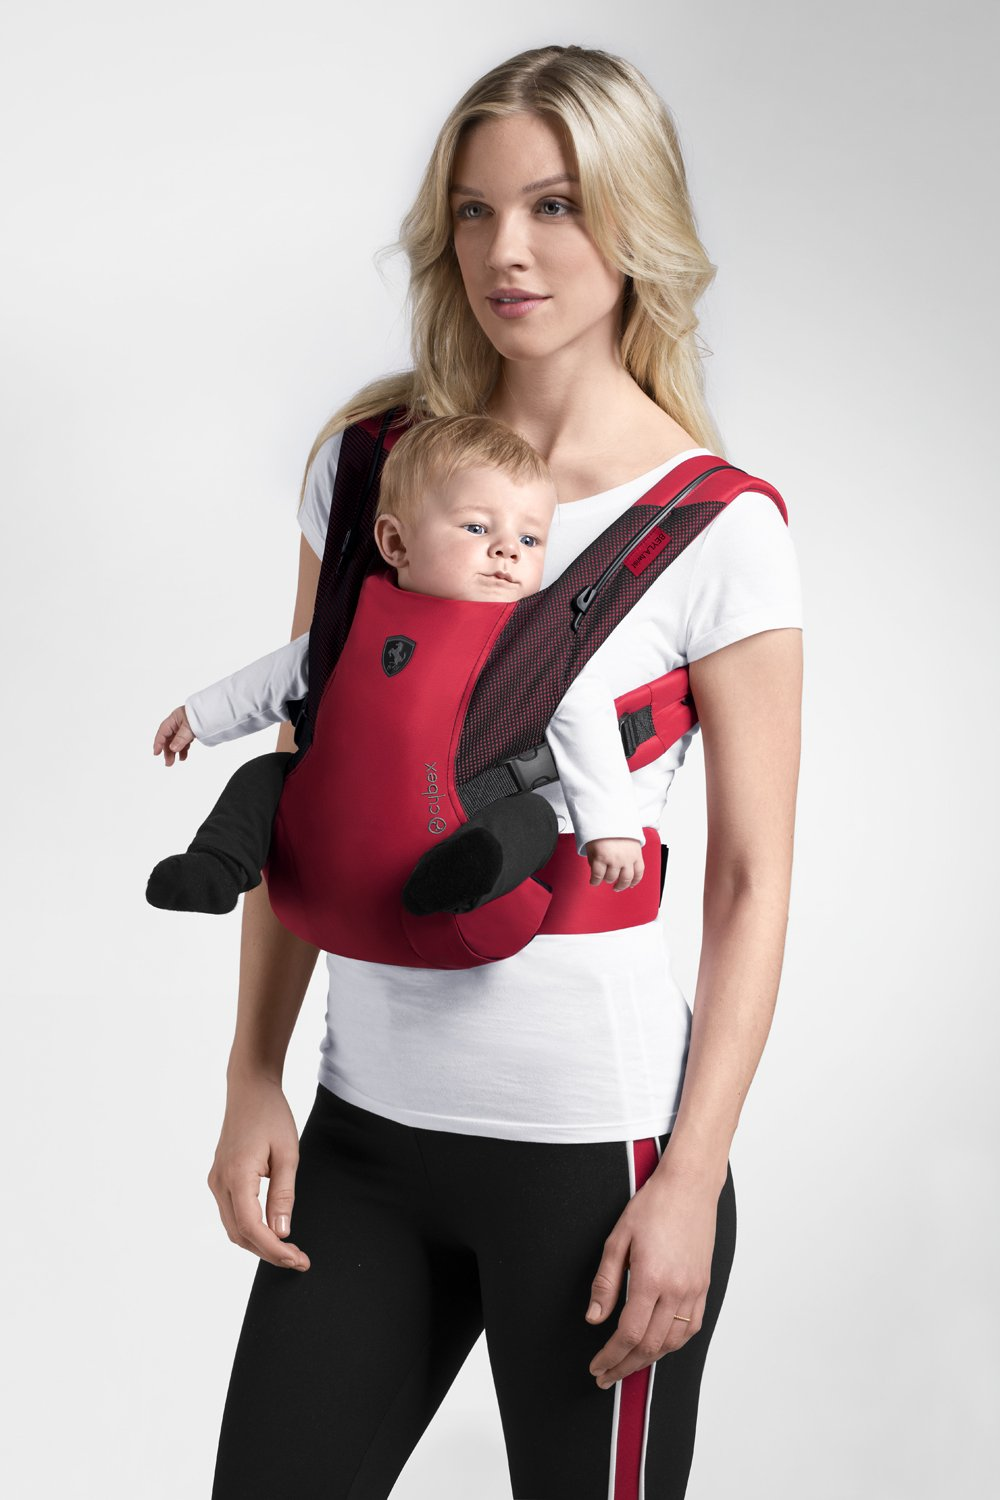 "CYBEX Gold BEYLA.twist Ergonomic Baby Carrier Scuderia Ferrari, From birth to approx. 2 years (approx. 3.5 - 15 kg), Victory Black  Comfortable and versatile adjustable baby carrier: For ergonomic carrying and healthy hip development in babies - Suitable from birth to approx. 2 years (approx. 3.5 - 15 kg), Recommended by the ""International Hip Dysplasia Institute"" Quick and easy putting on/taking off due to practical buckle system, Individually and continuously adjustable, Optimum wearing safety due to safety buckle on the waist belt Width and height-adjustable belt for individual adaptability, Multi-functional head and neck support, Promotes healthy development of the joints through natural squat position 8"